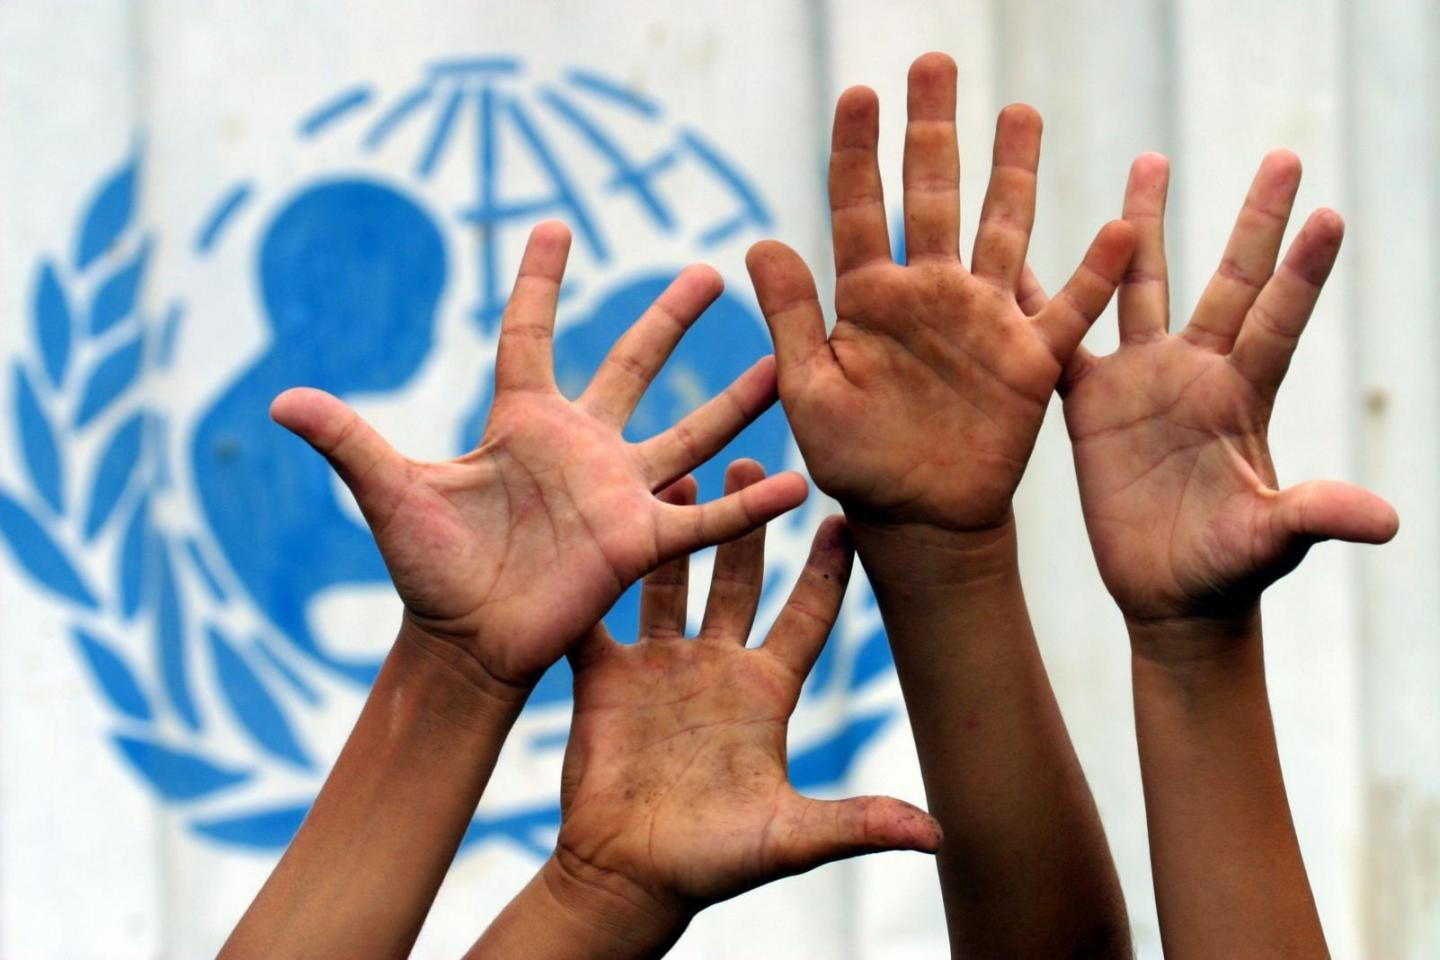 Hands raised in the air in front of UNICEF's logo